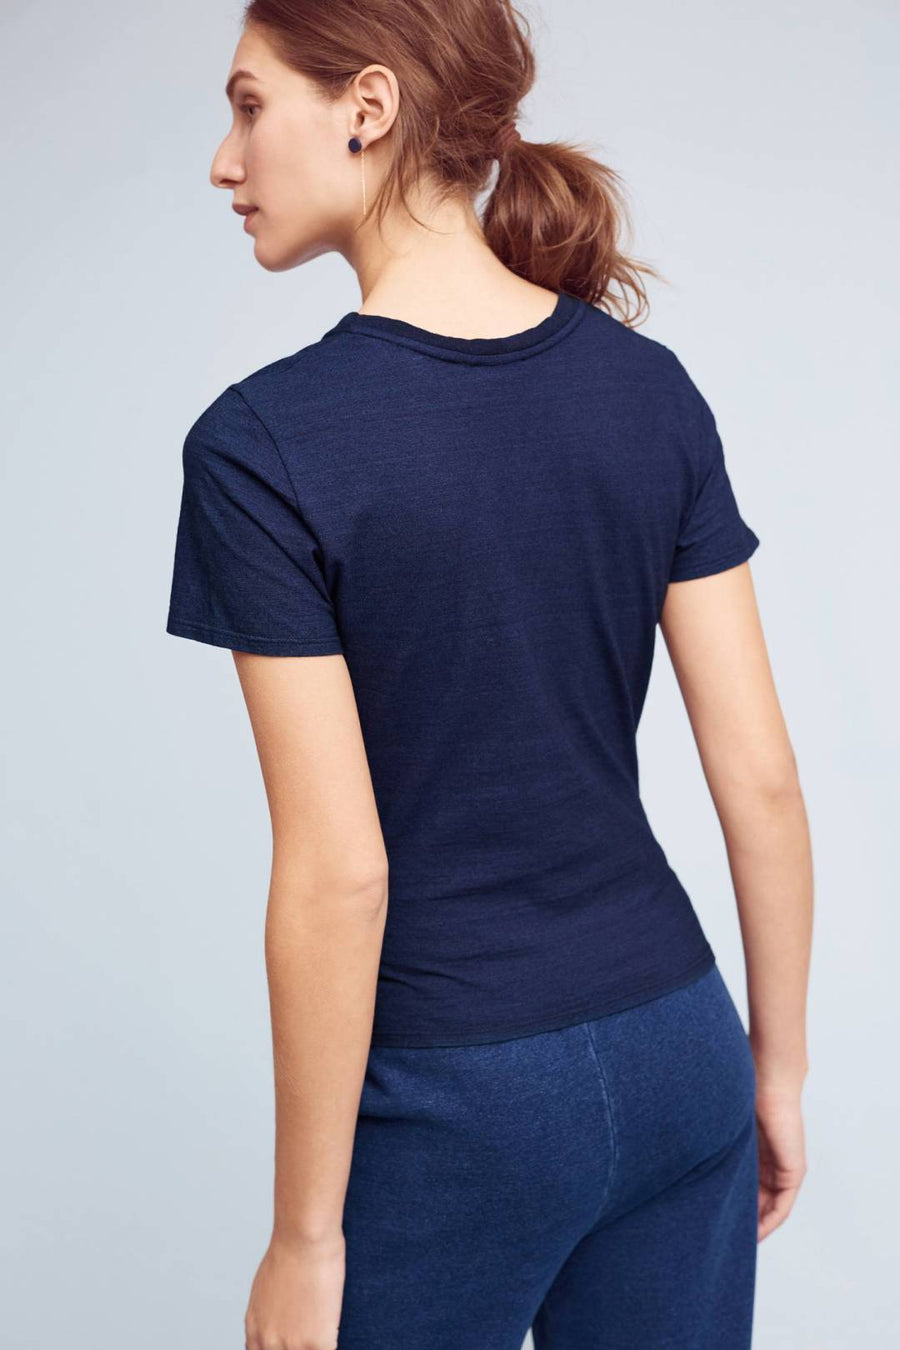 Anthropologie AG Navy Twisted Knit Top (S)